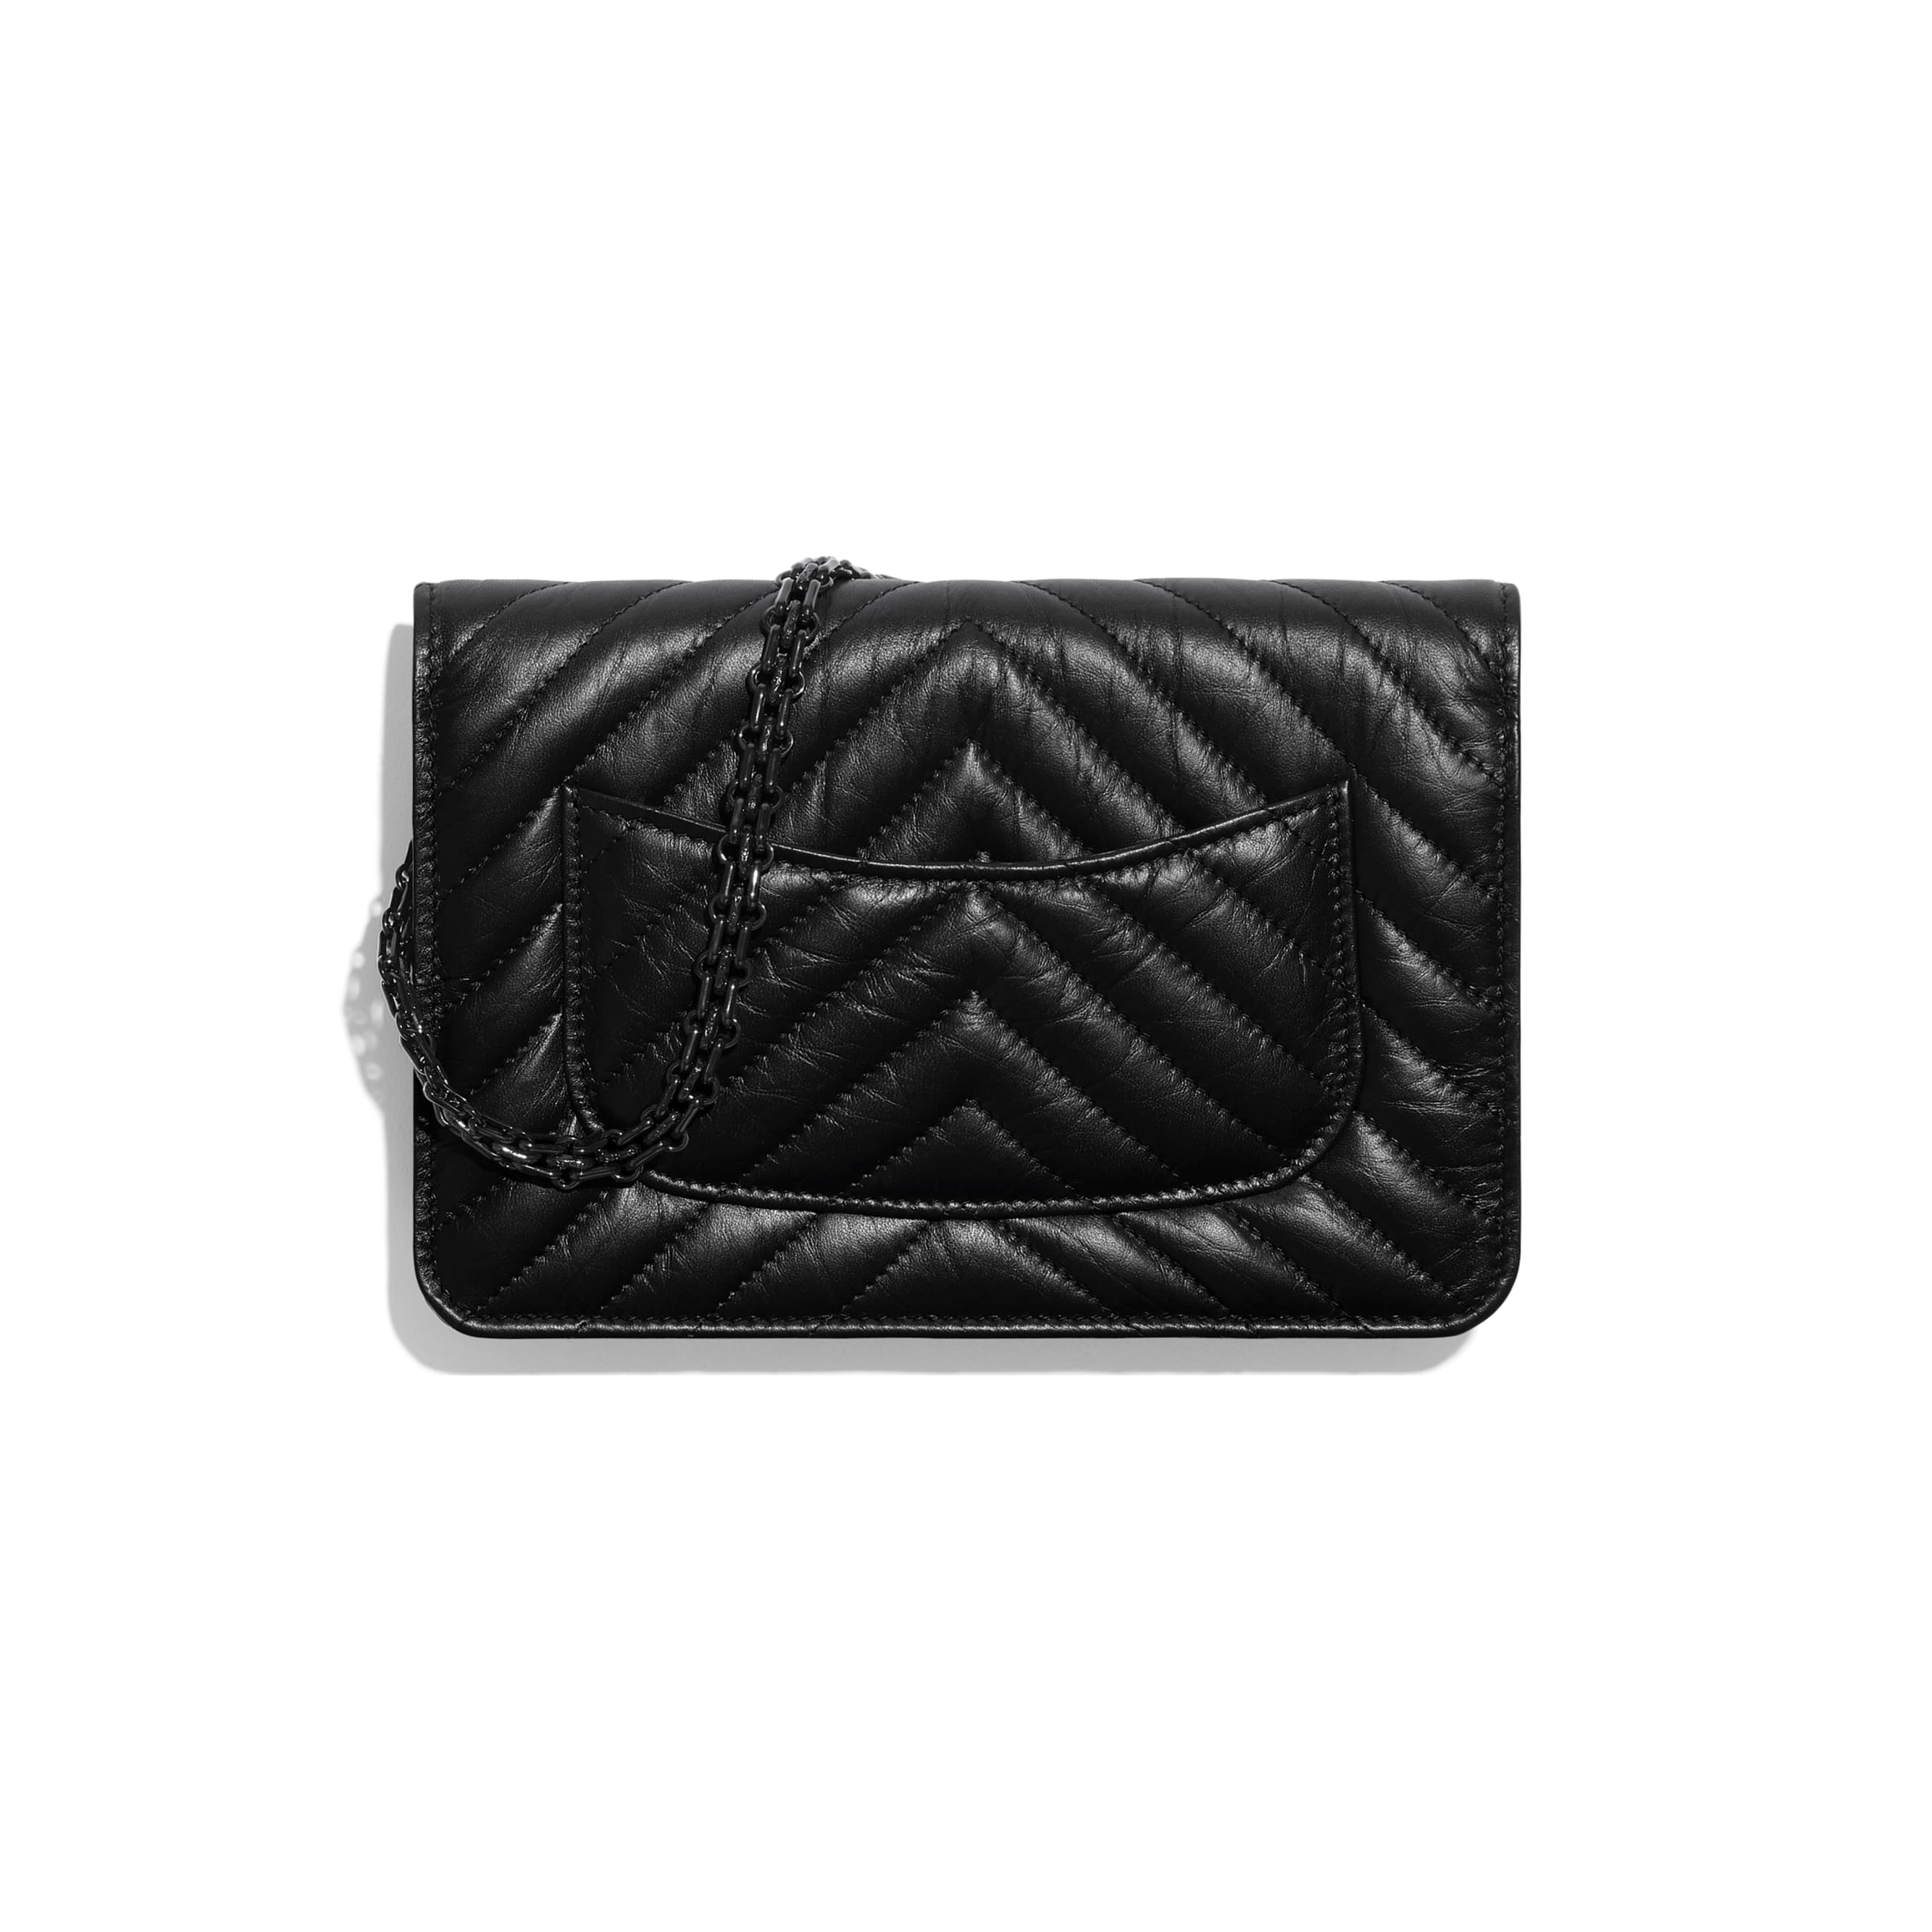 2.55 Wallet On Chain - Black - Aged Calfskin & Black Metal - CHANEL - Alternative view - see standard sized version